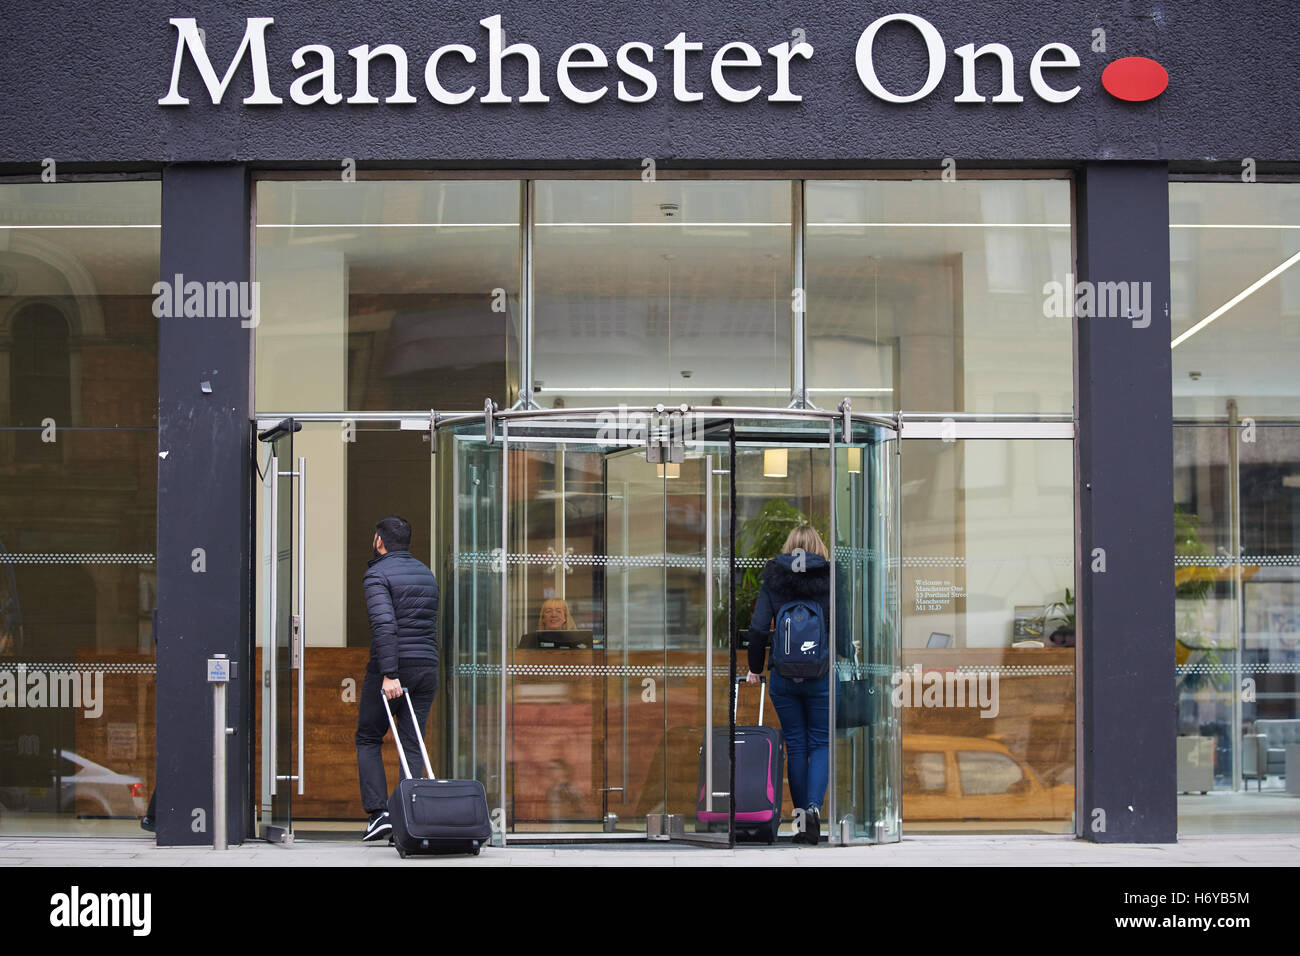 Manchester One Office Entrance Doors Sign Office Space Development Stock Photo Alamy